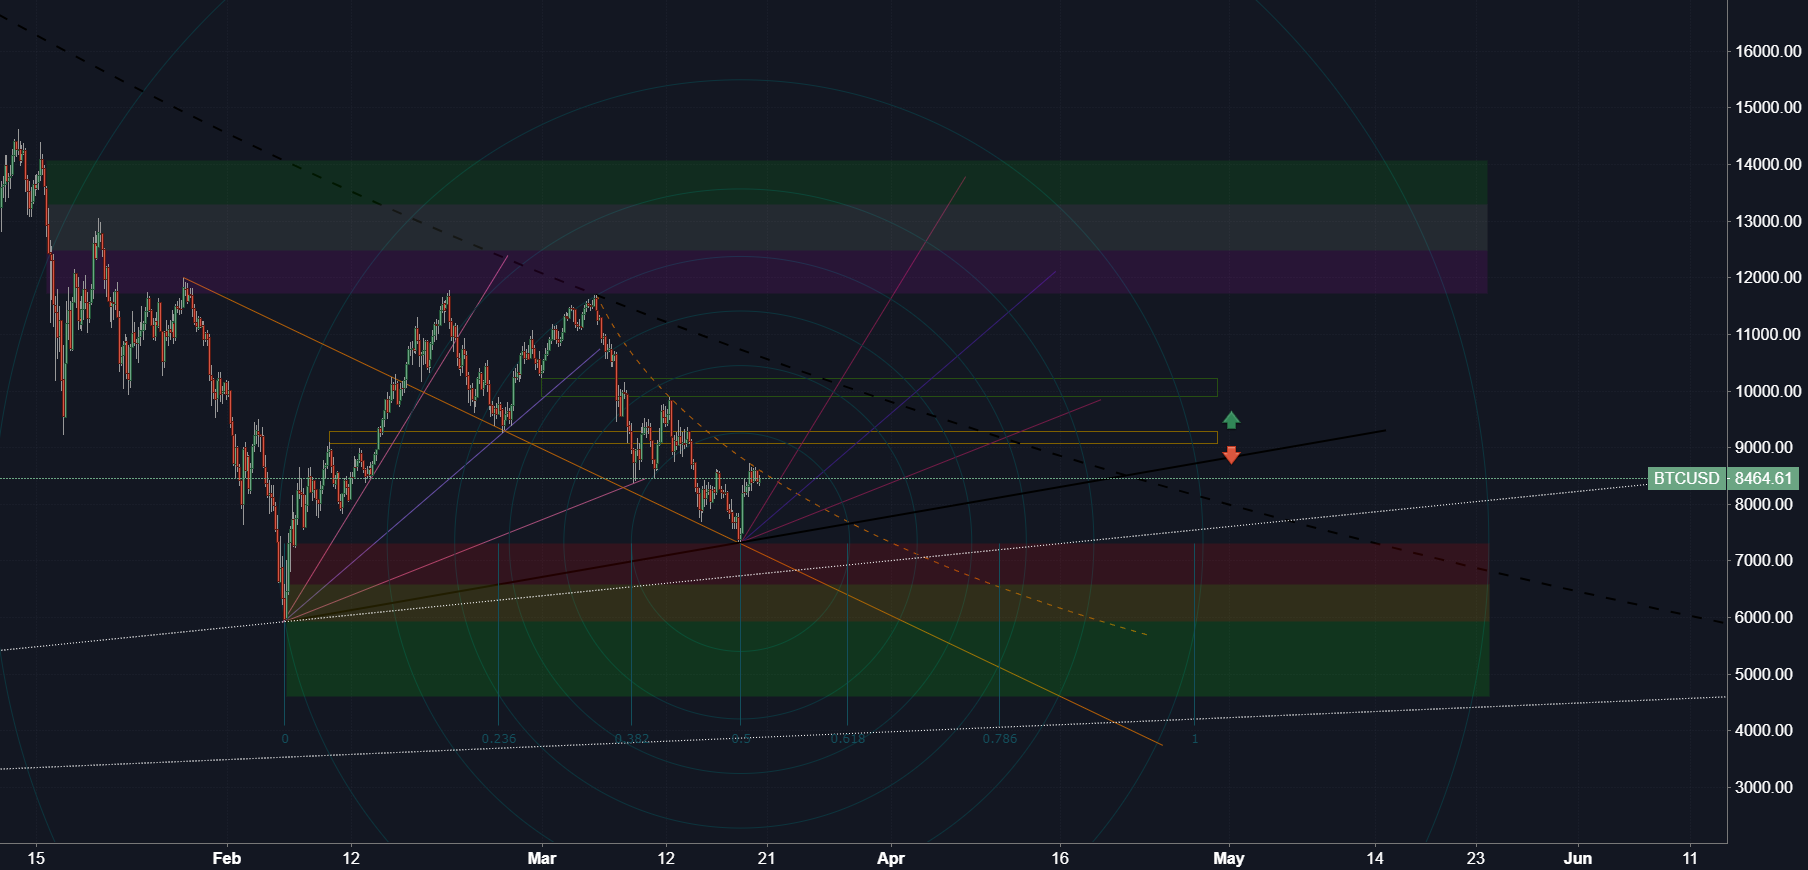 Bitcoin Support/Resistance test